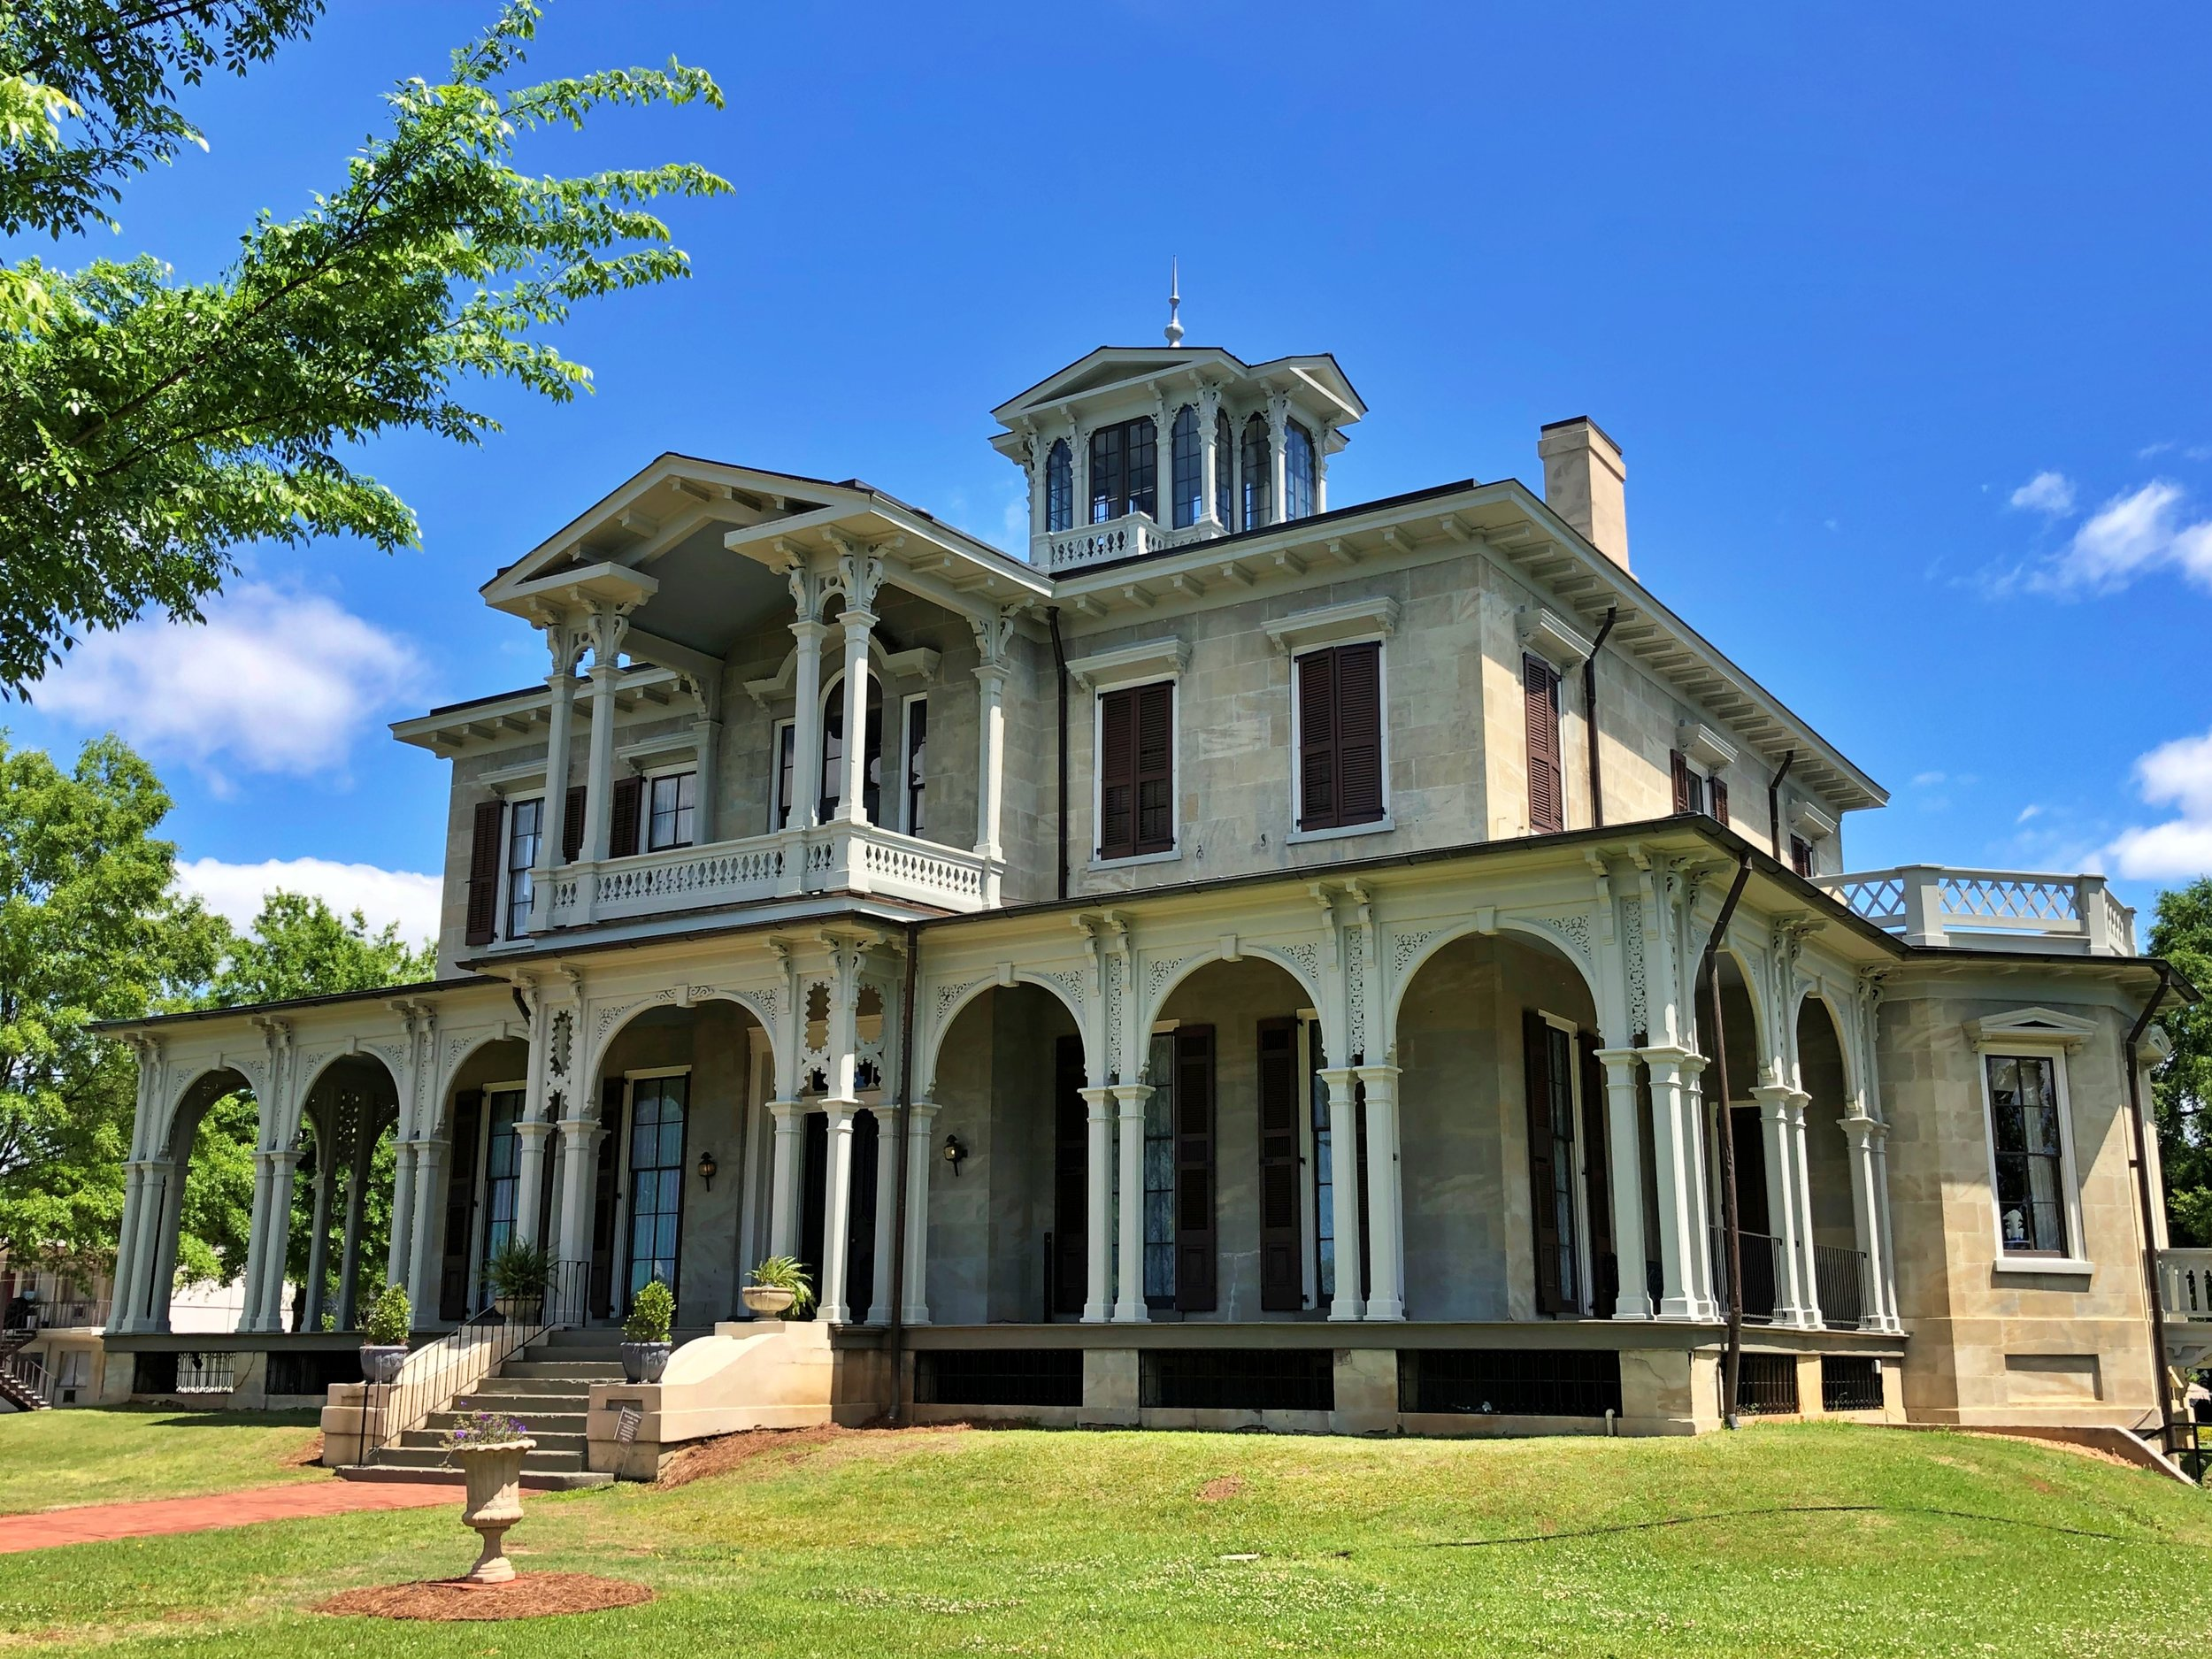 Jemison-Van de Graaf Mansion, 1852 … Photo by Caroline Pugh